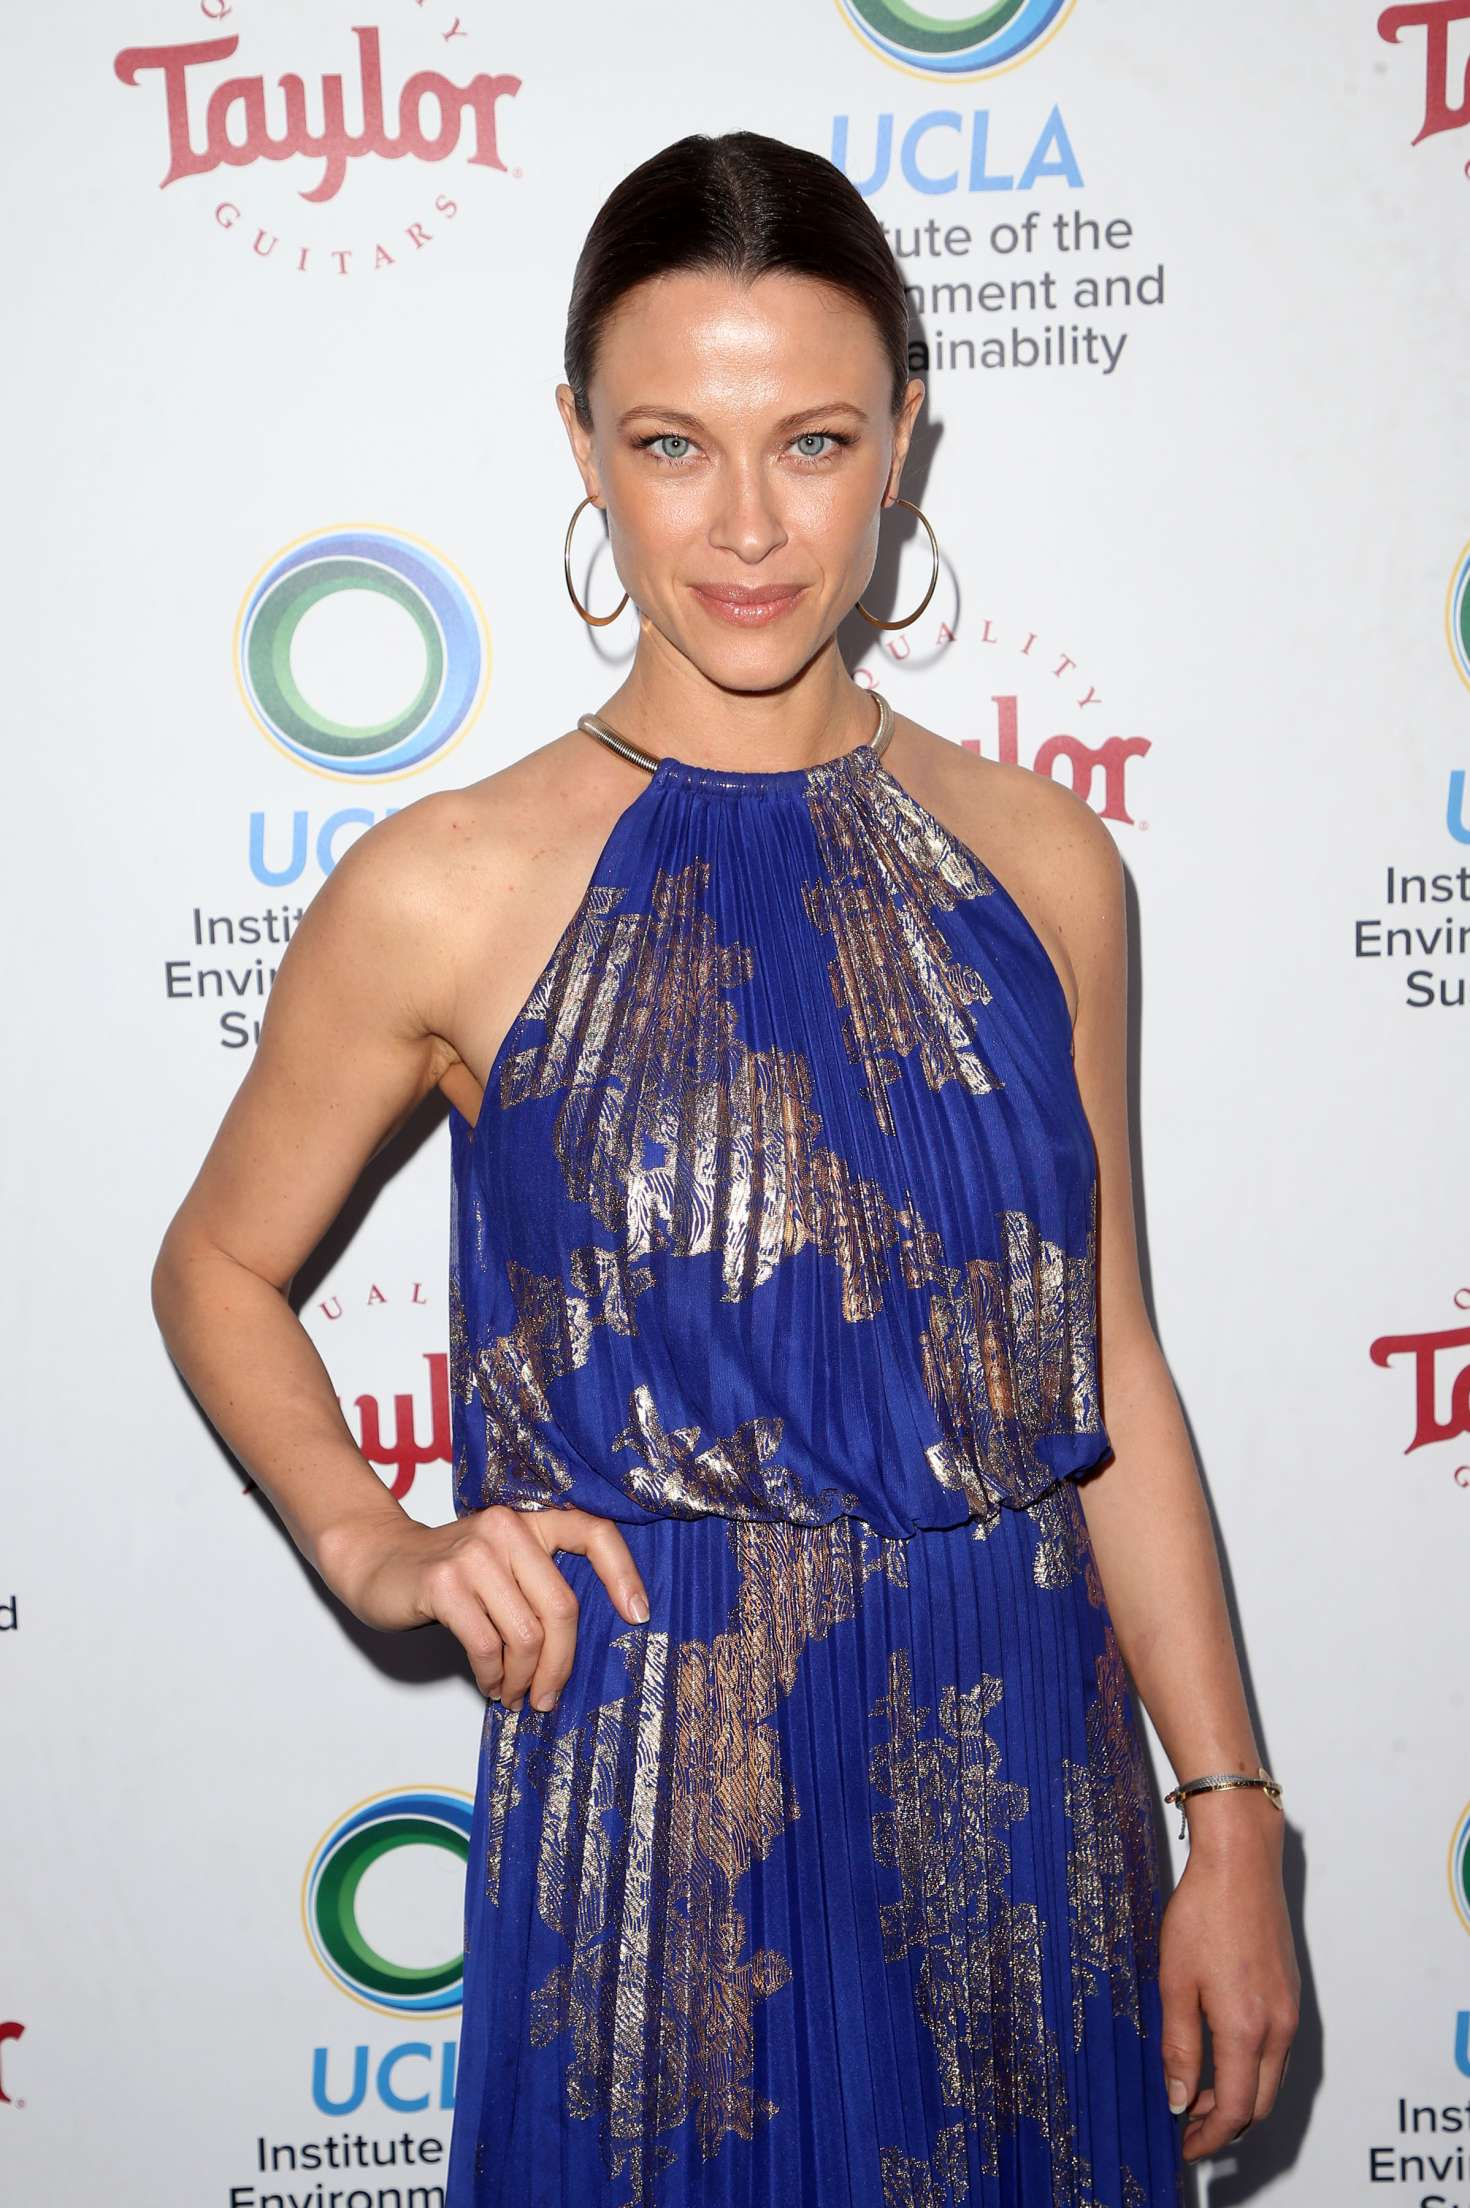 Scottie Thompson - 2018 UCLA's Institute of the Environment and Sustainability Gala in LA